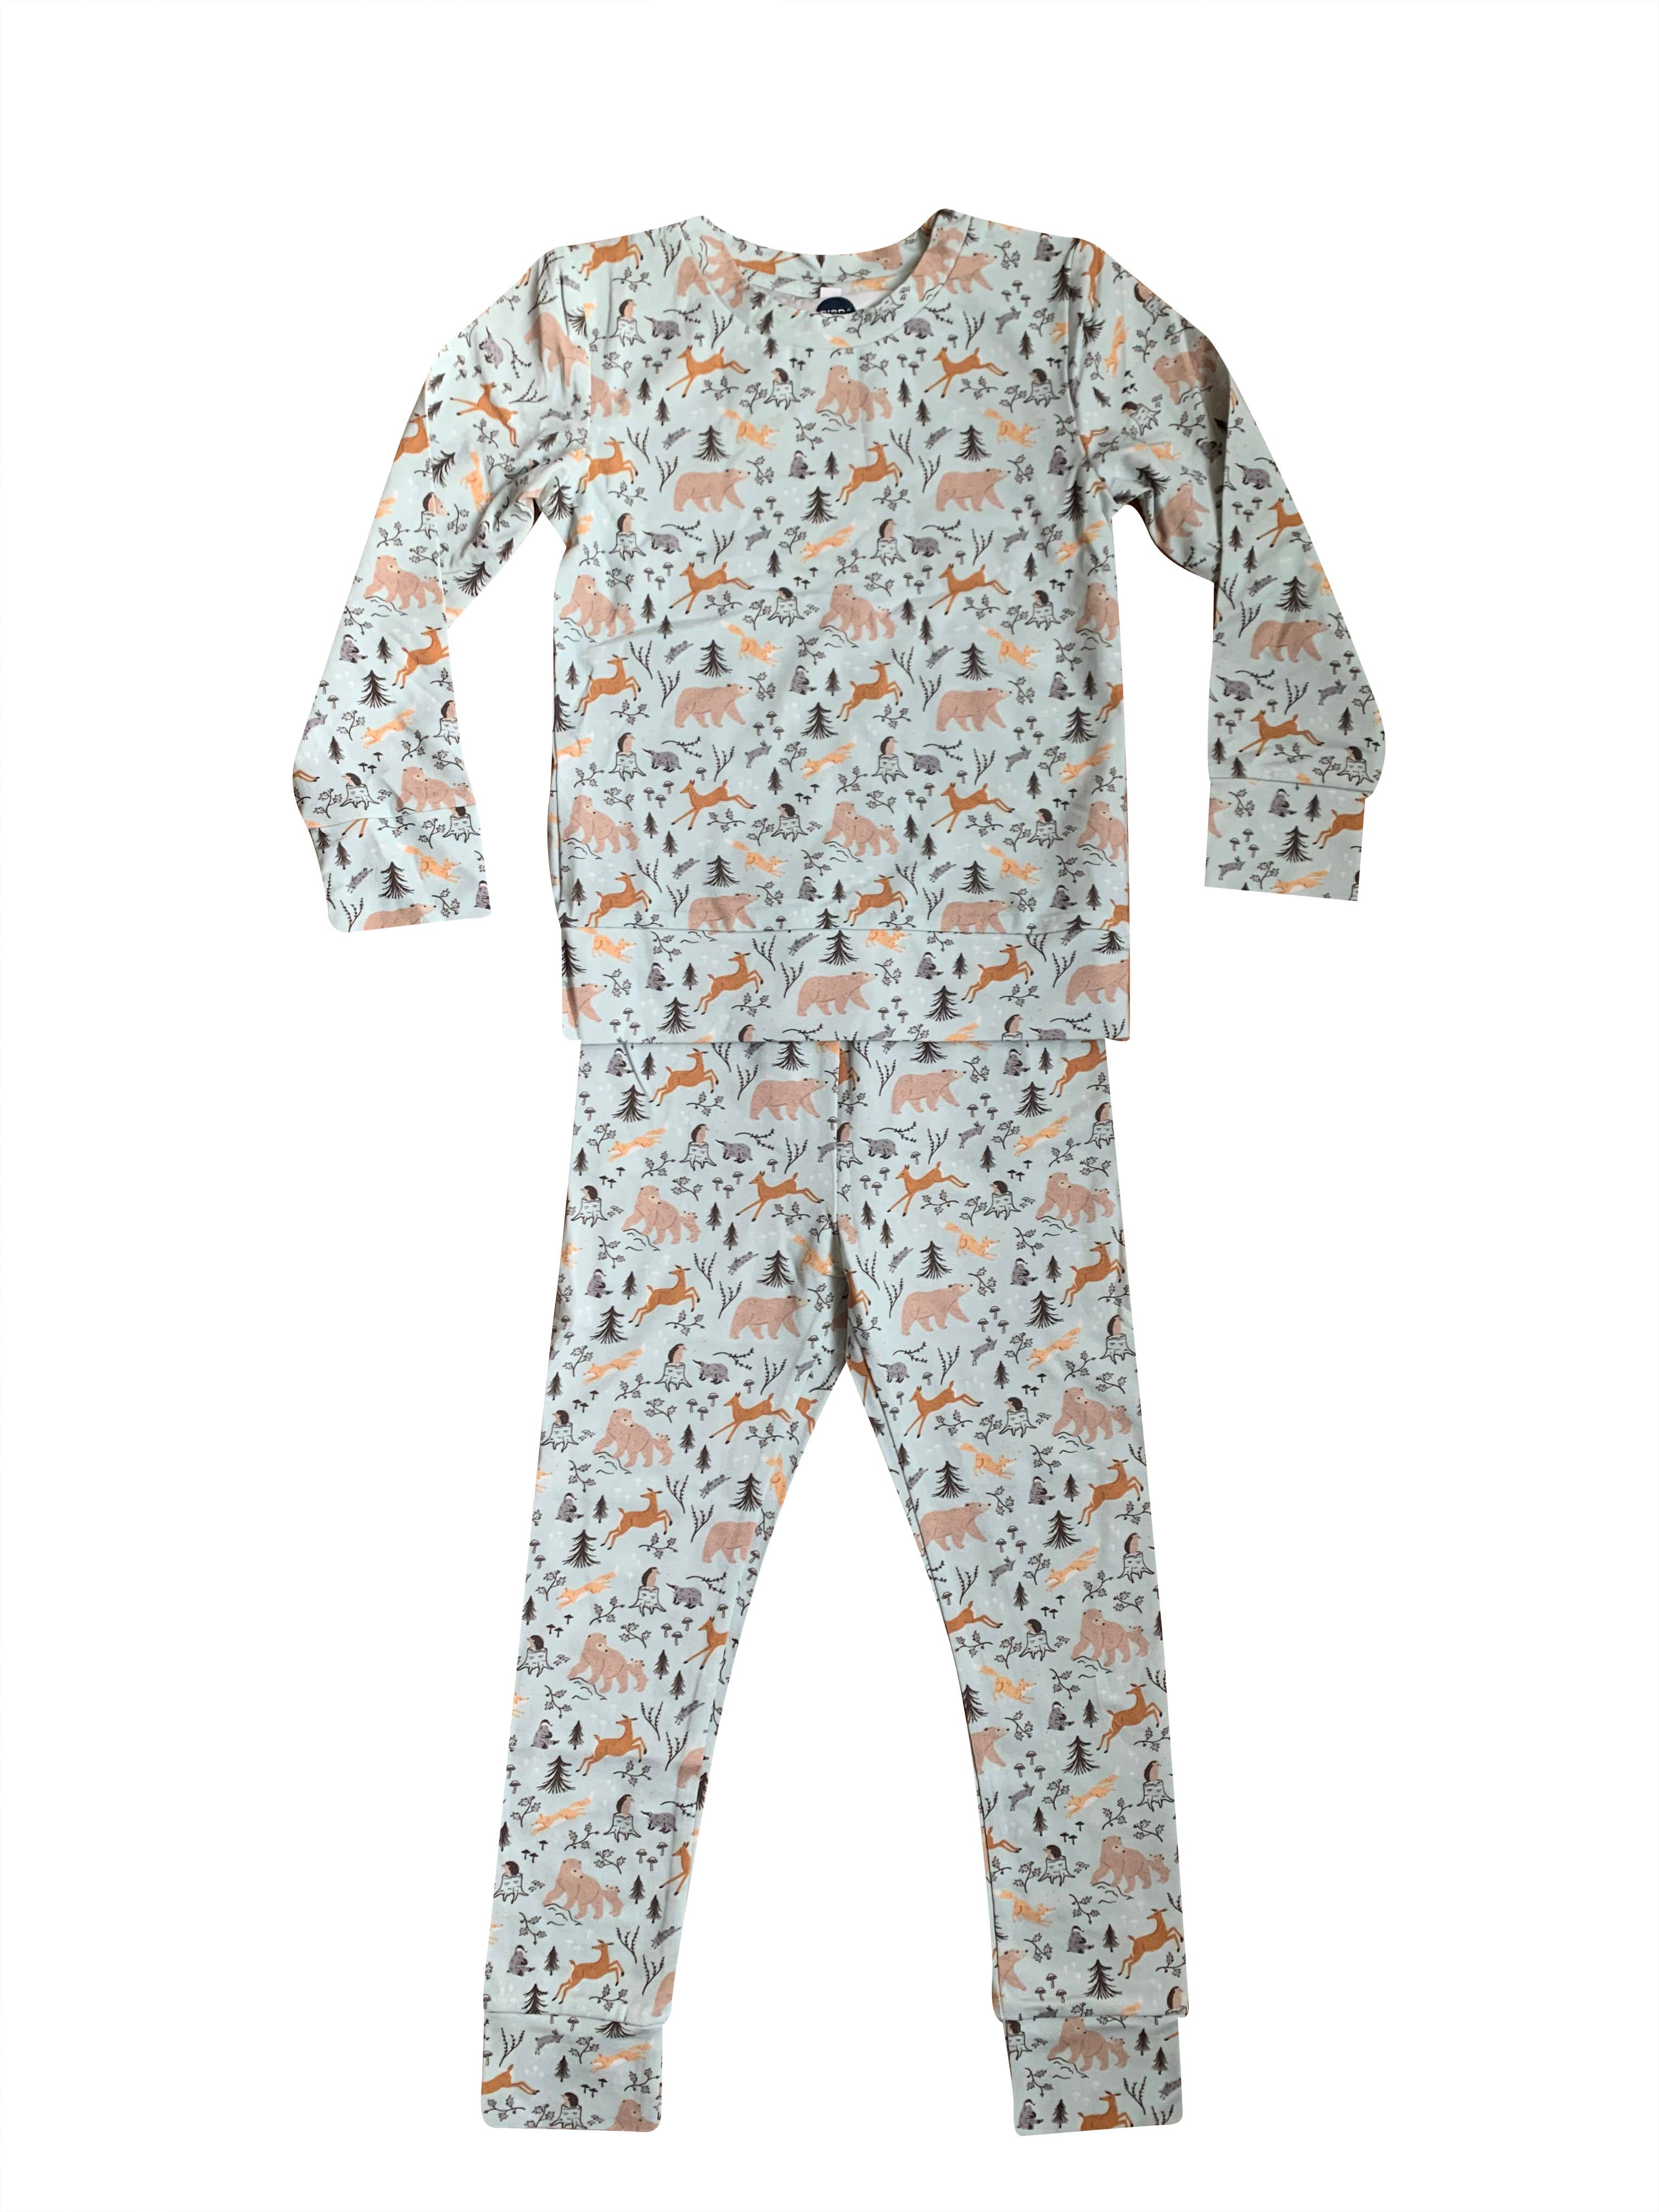 Forest Friends Two Piece PJ/Lounge Set